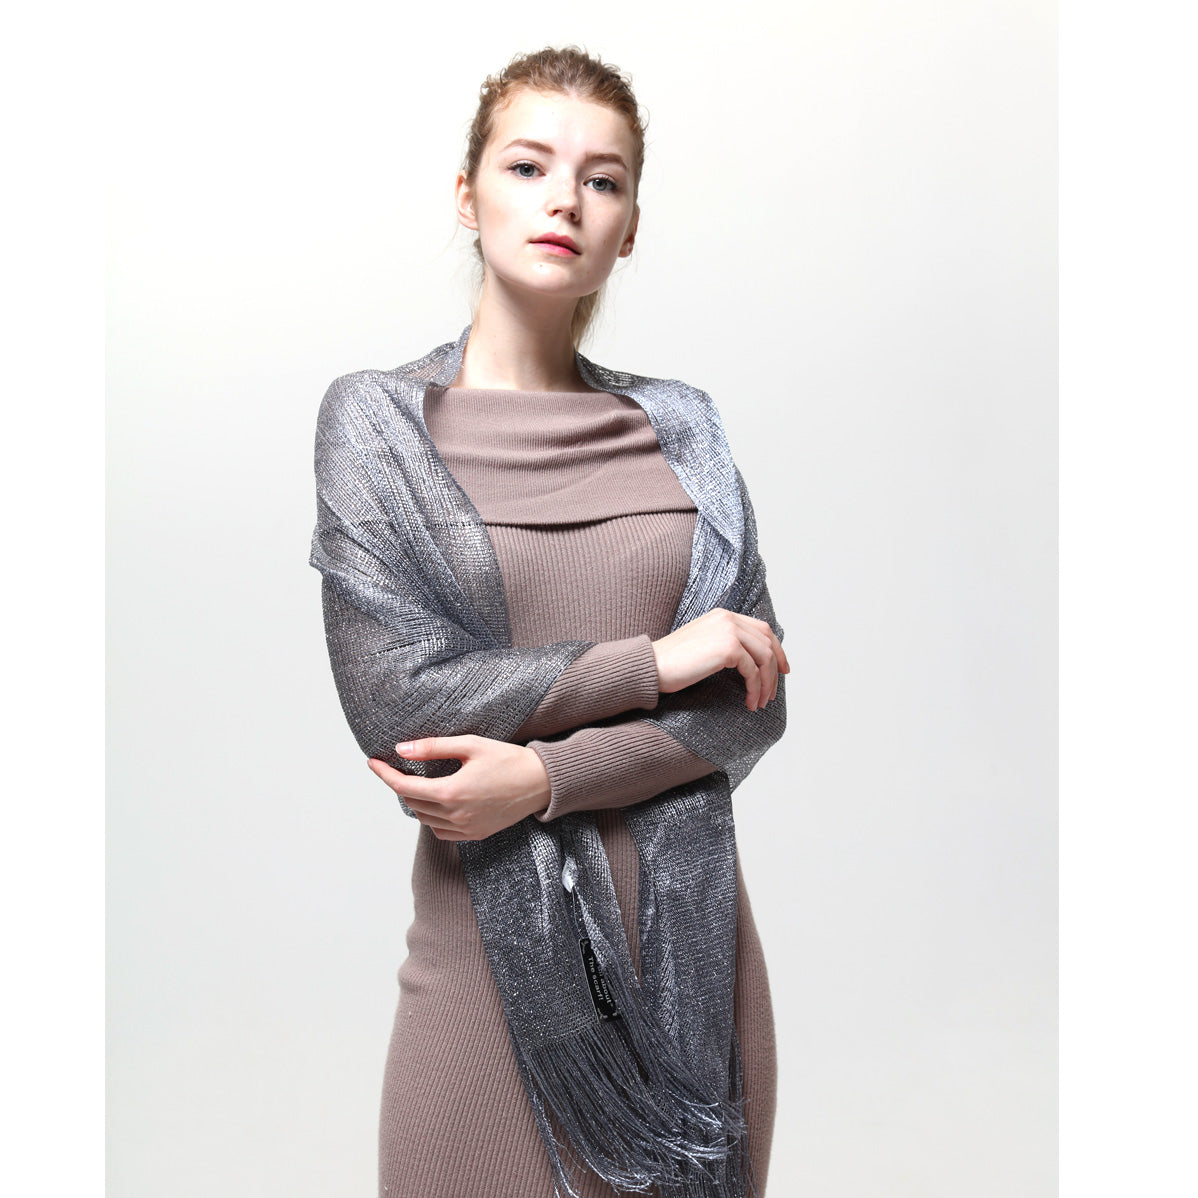 AM23118-02  Lurex Sheer Metallic Evening Scarf  Grey